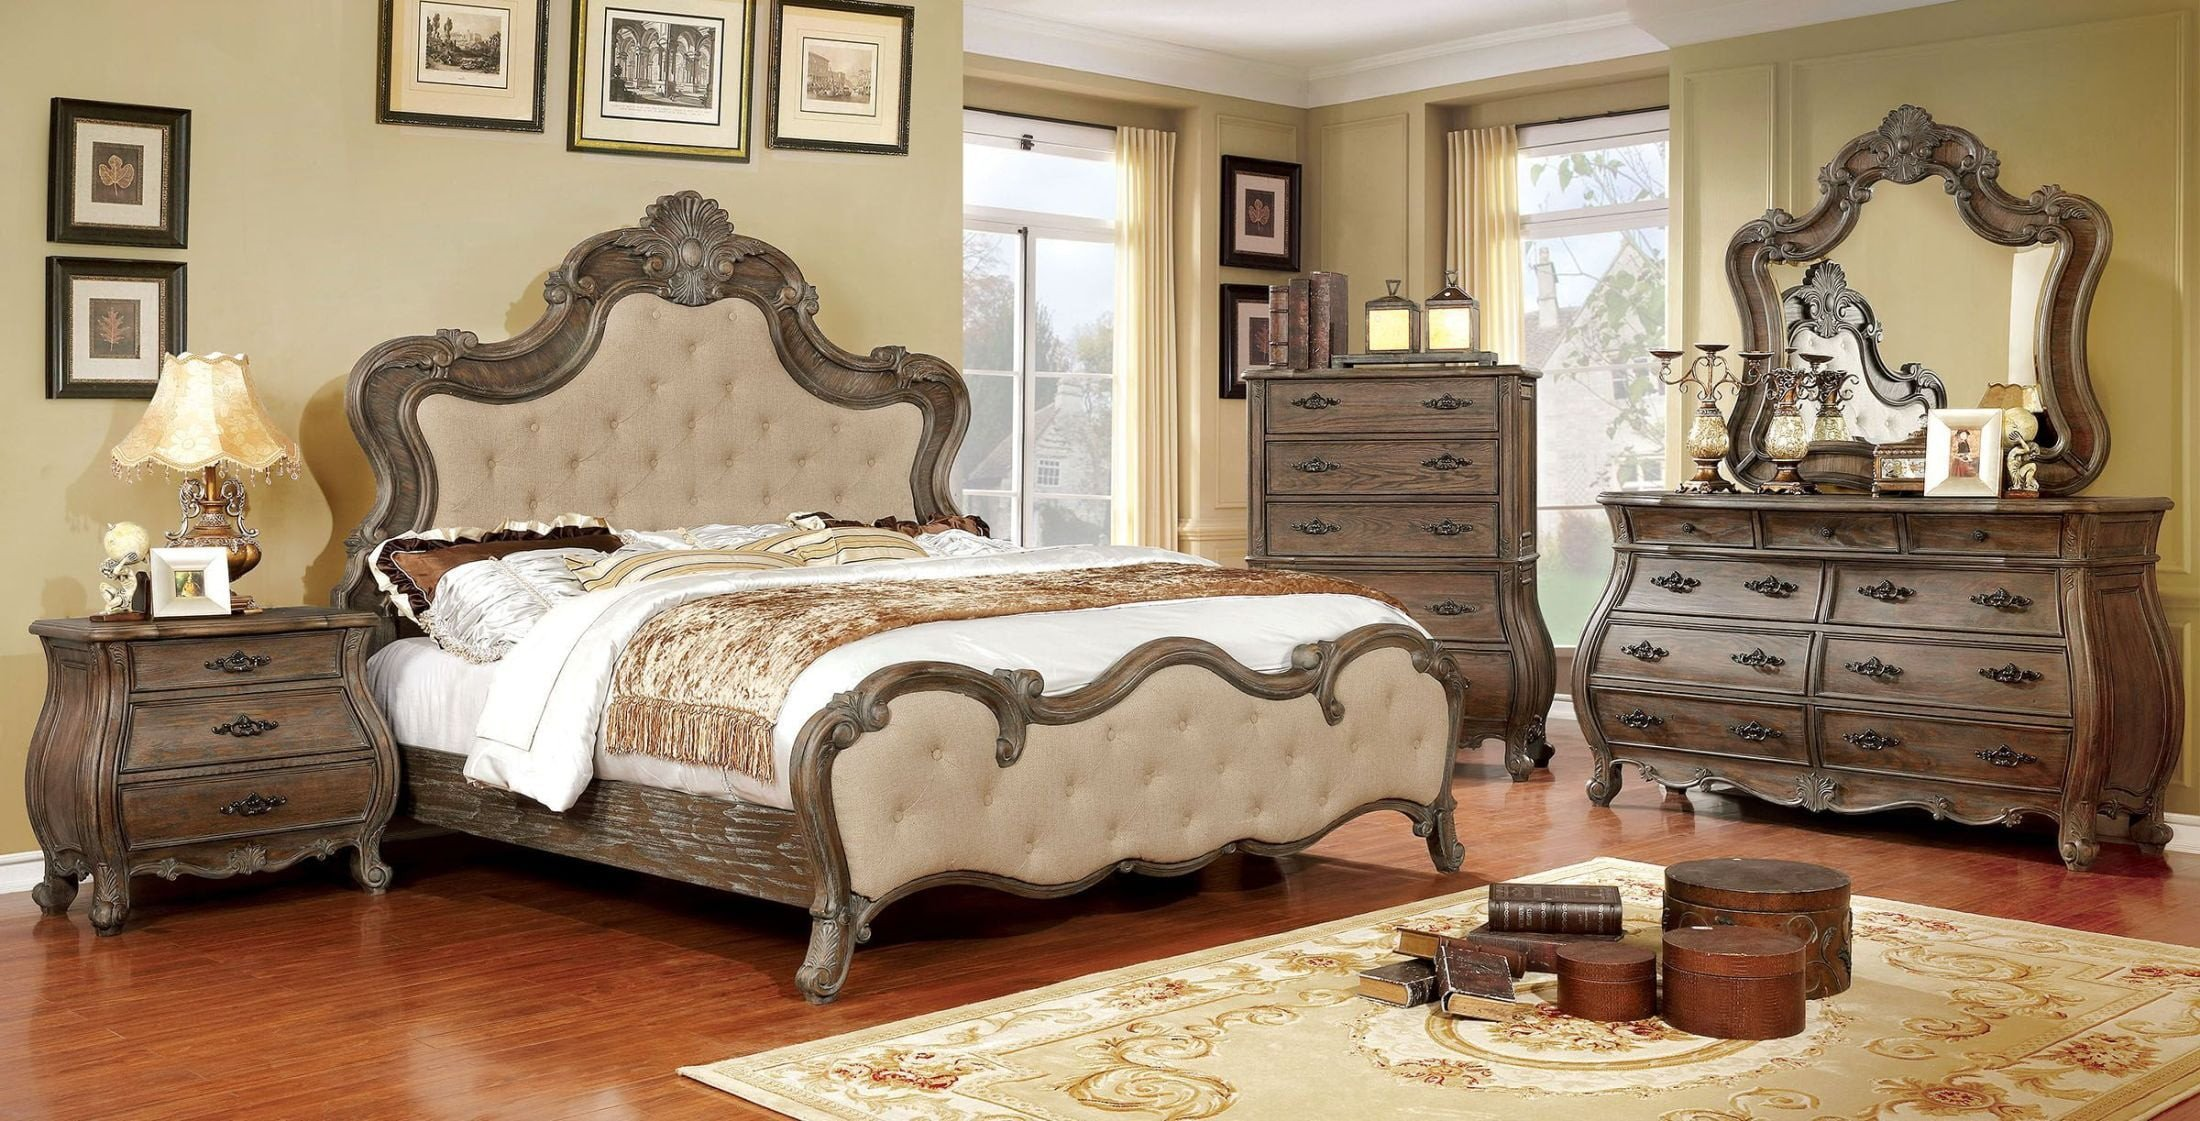 Rustic King Bedroom Set Lovely Cursa Rustic Natural Panel Bedroom Set